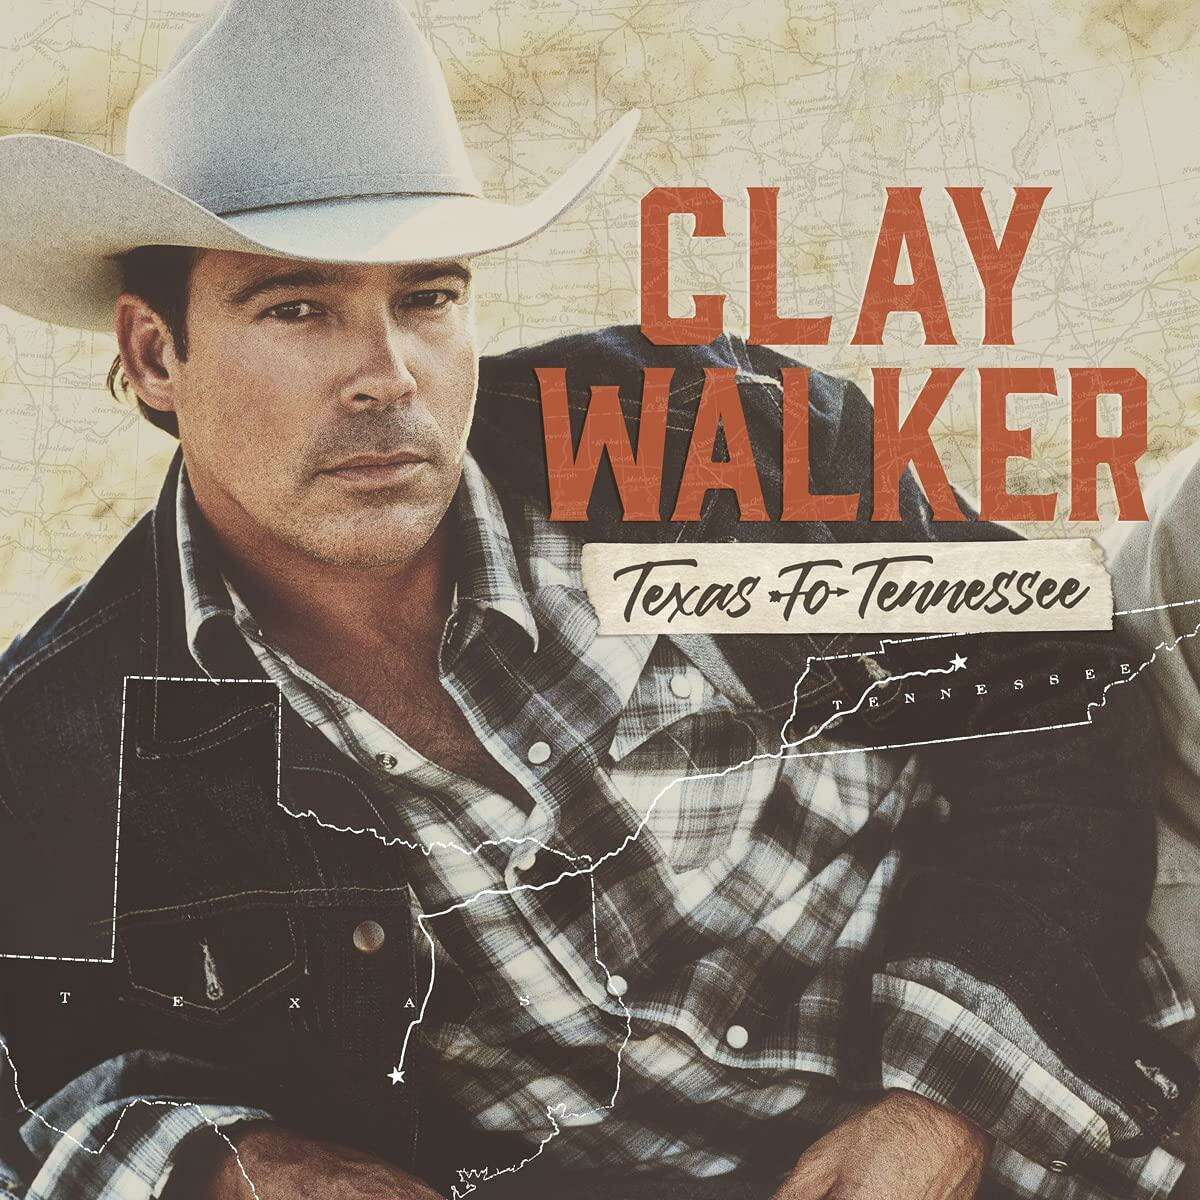 """""""Texas to Tennessee"""" by Clay Walker"""